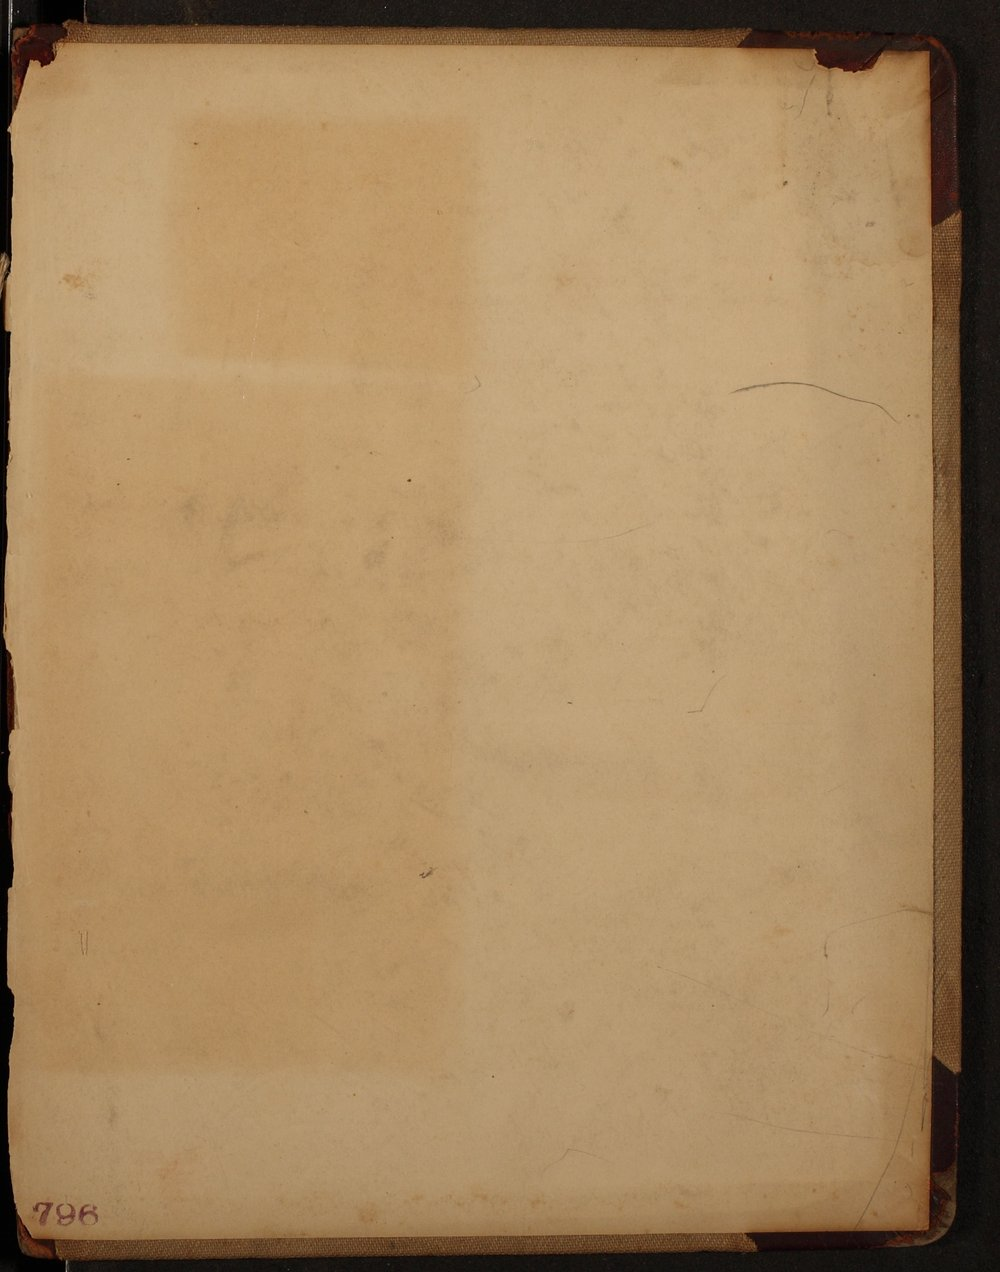 Minutes of the McPherson Chapter of the Woman's Christian Temperance Union - Inside Back Cover